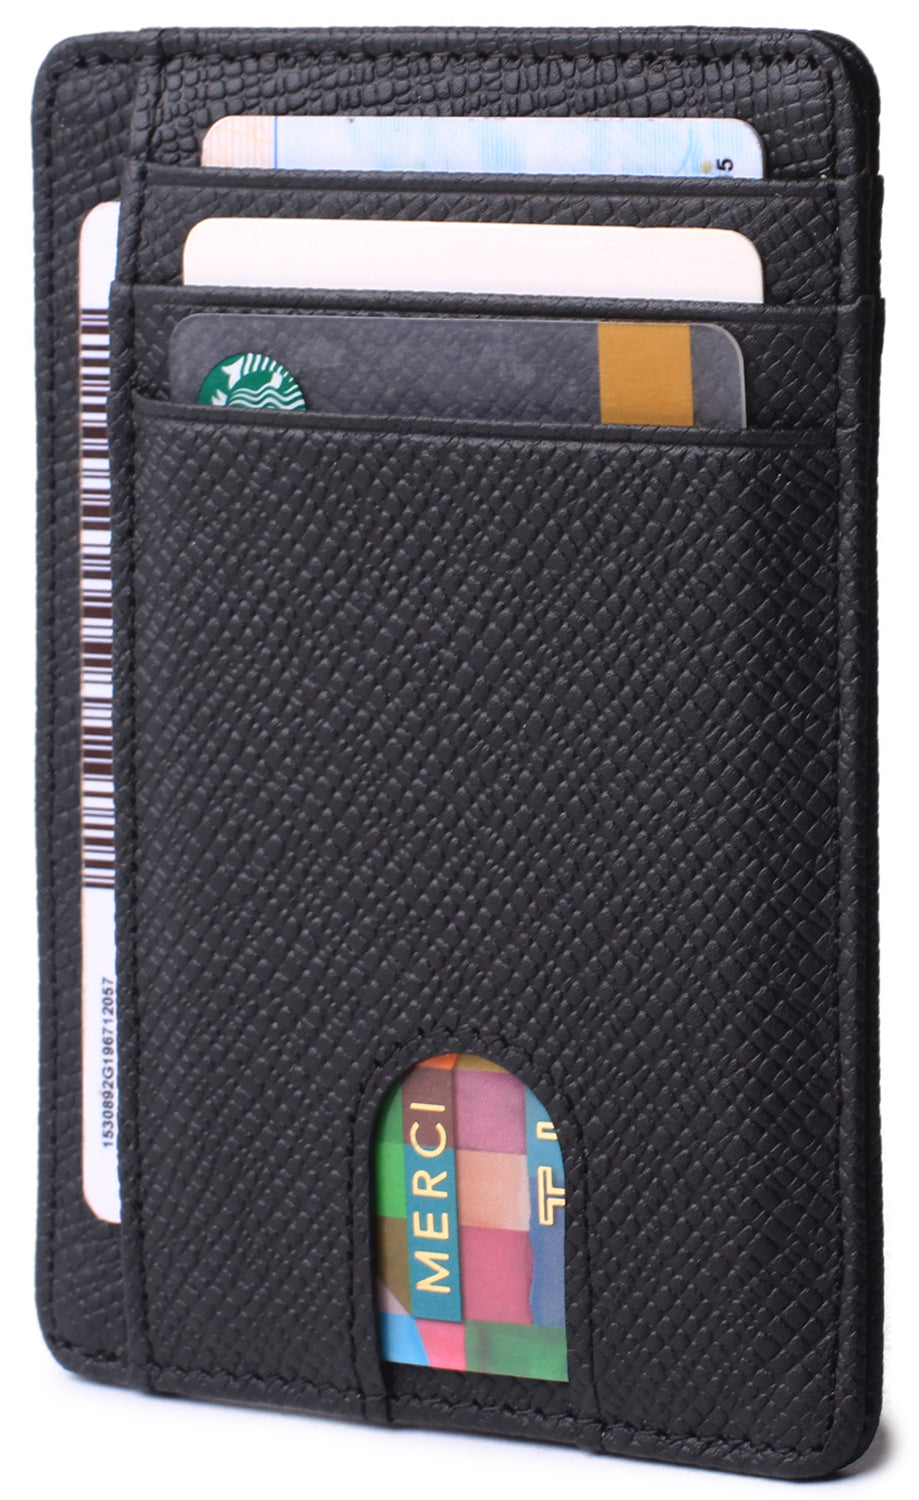 Slim Minimalist Front Pocket RFID Blocking Leather Wallets for Men & Women BG2288 Cross Black - Borgasets